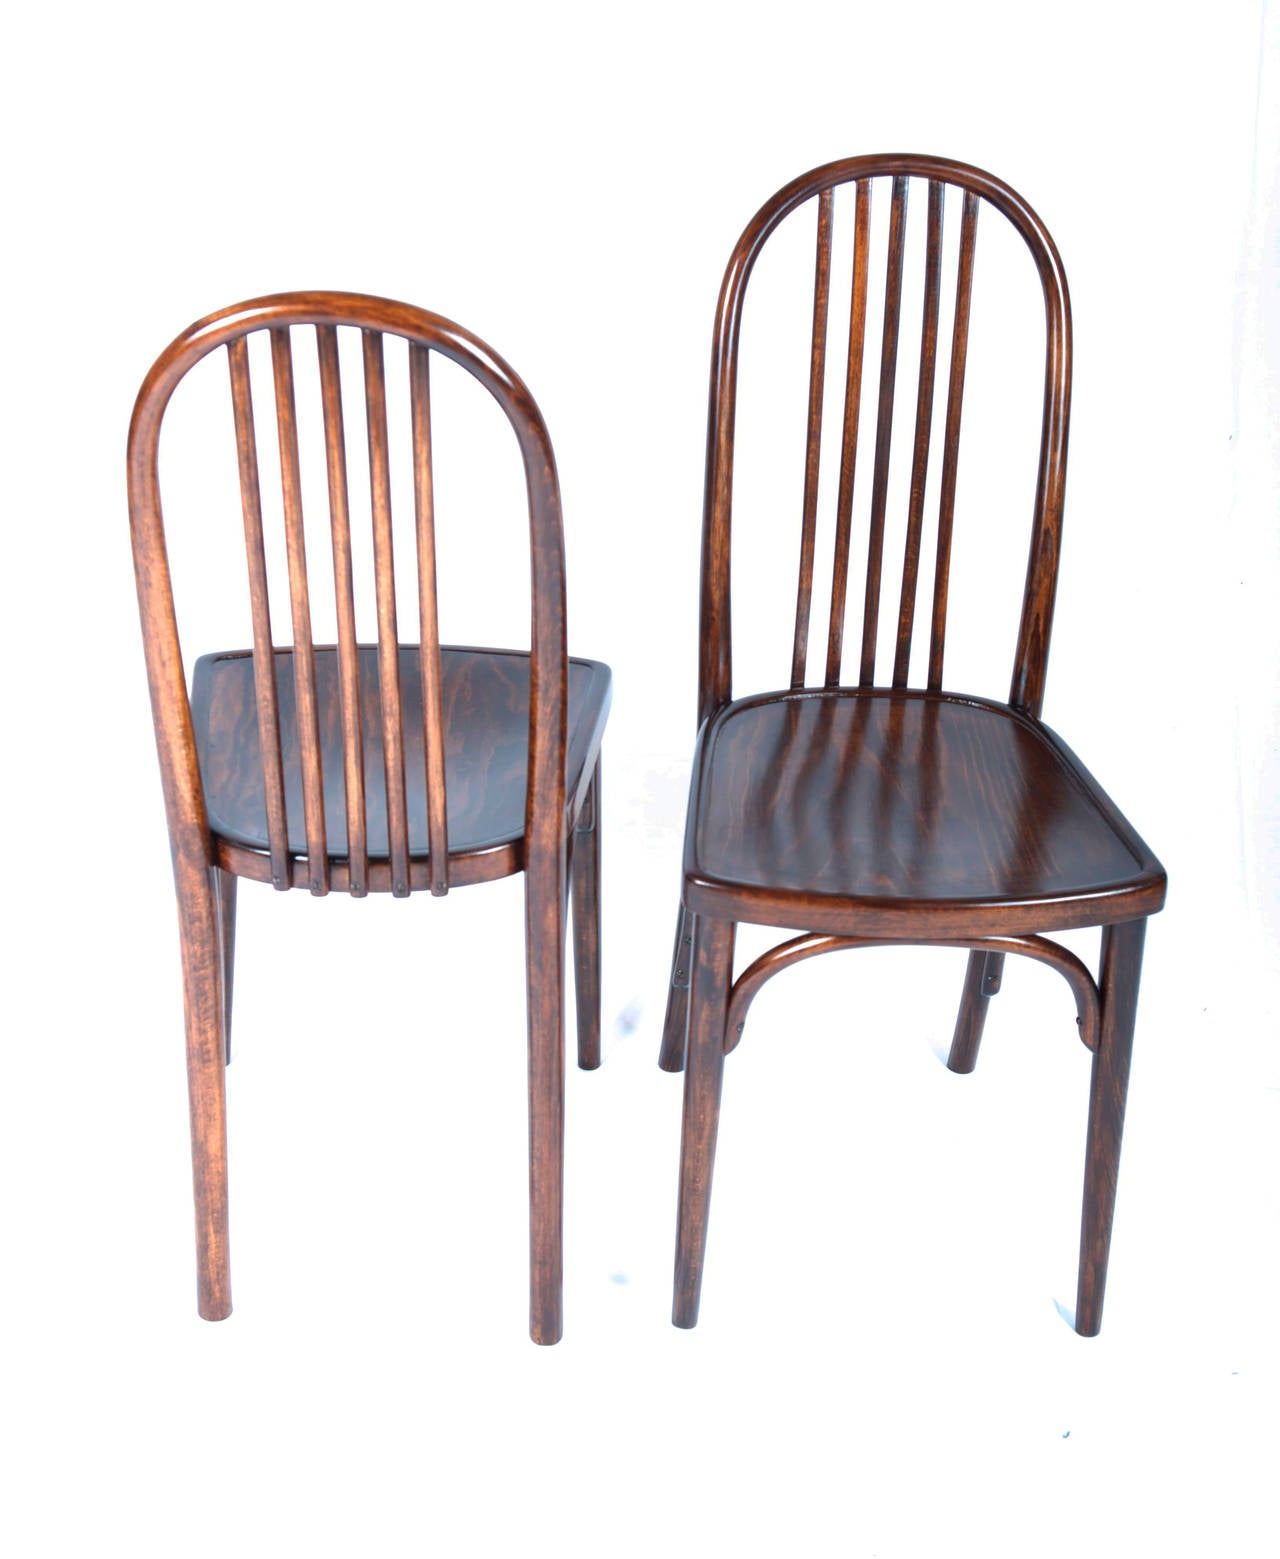 Set Of 6 Thonet Chairs No. 644 Designed By Josef Hoffmann 3